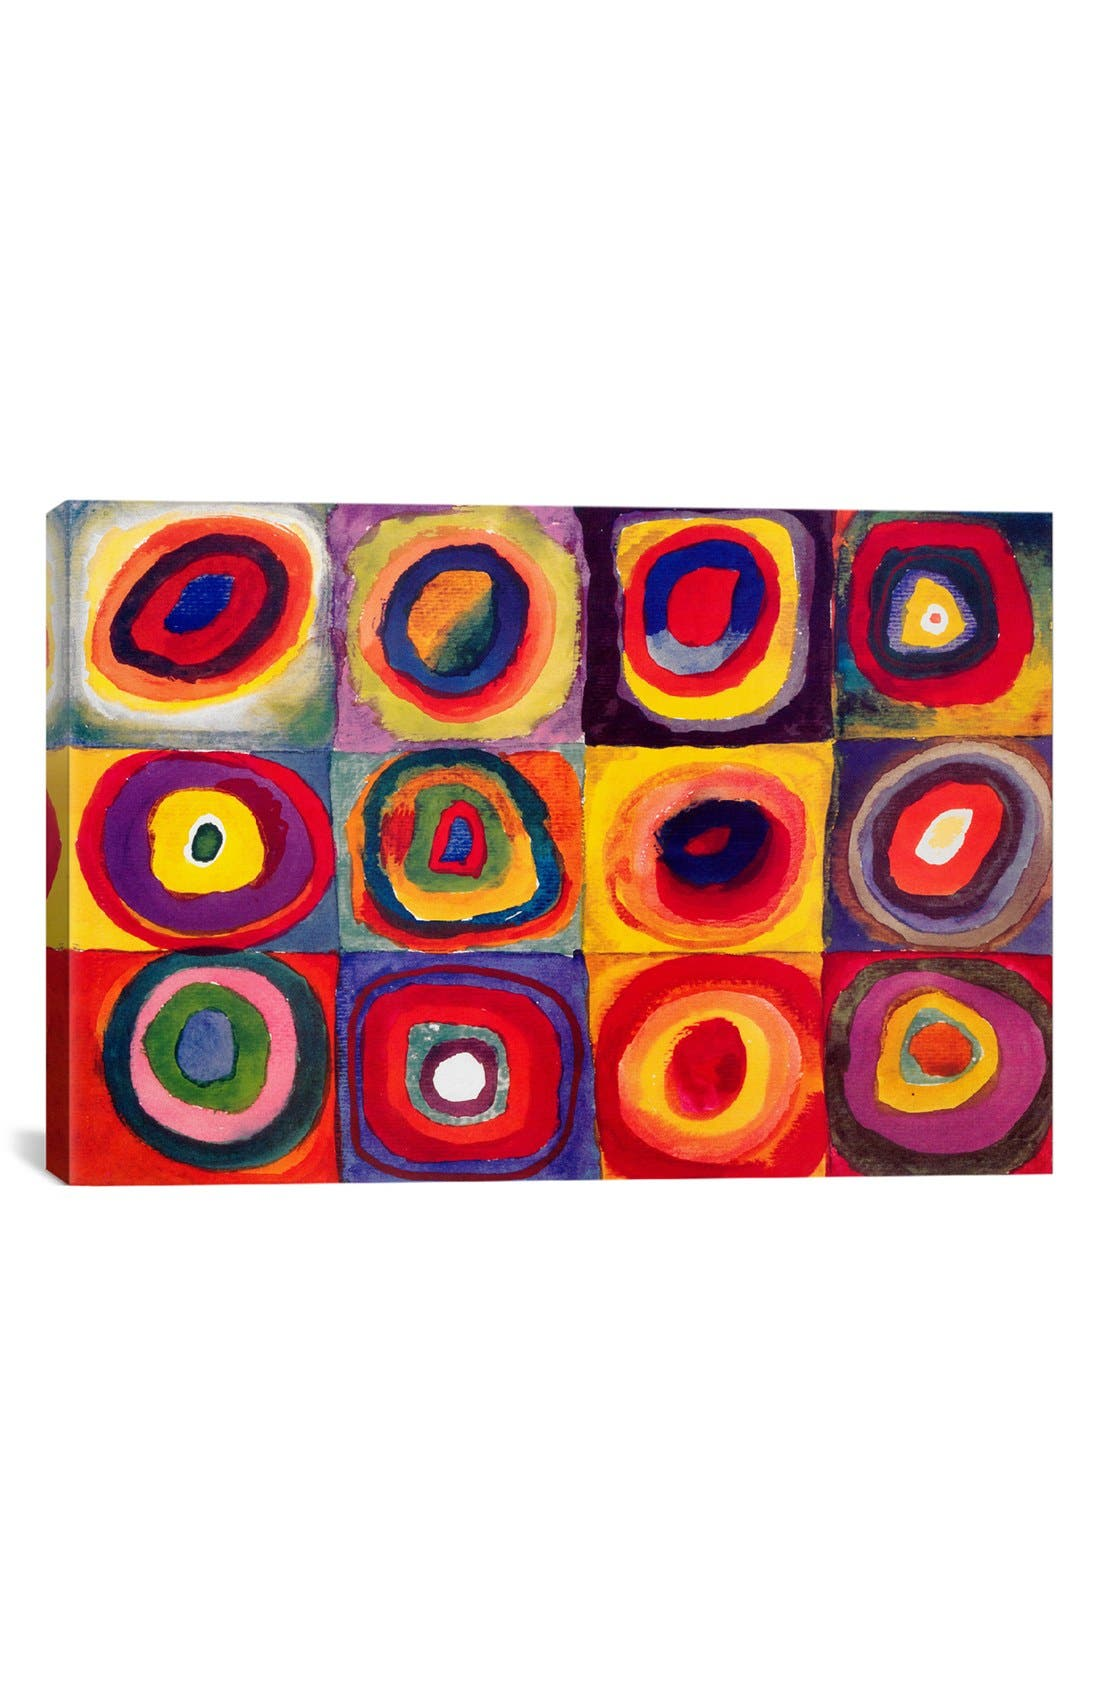 Alternate Image 1 Selected - iCanvas 'Squares With Concentric Circles - Wassily Kandinsky' Giclée Print Canvas Art